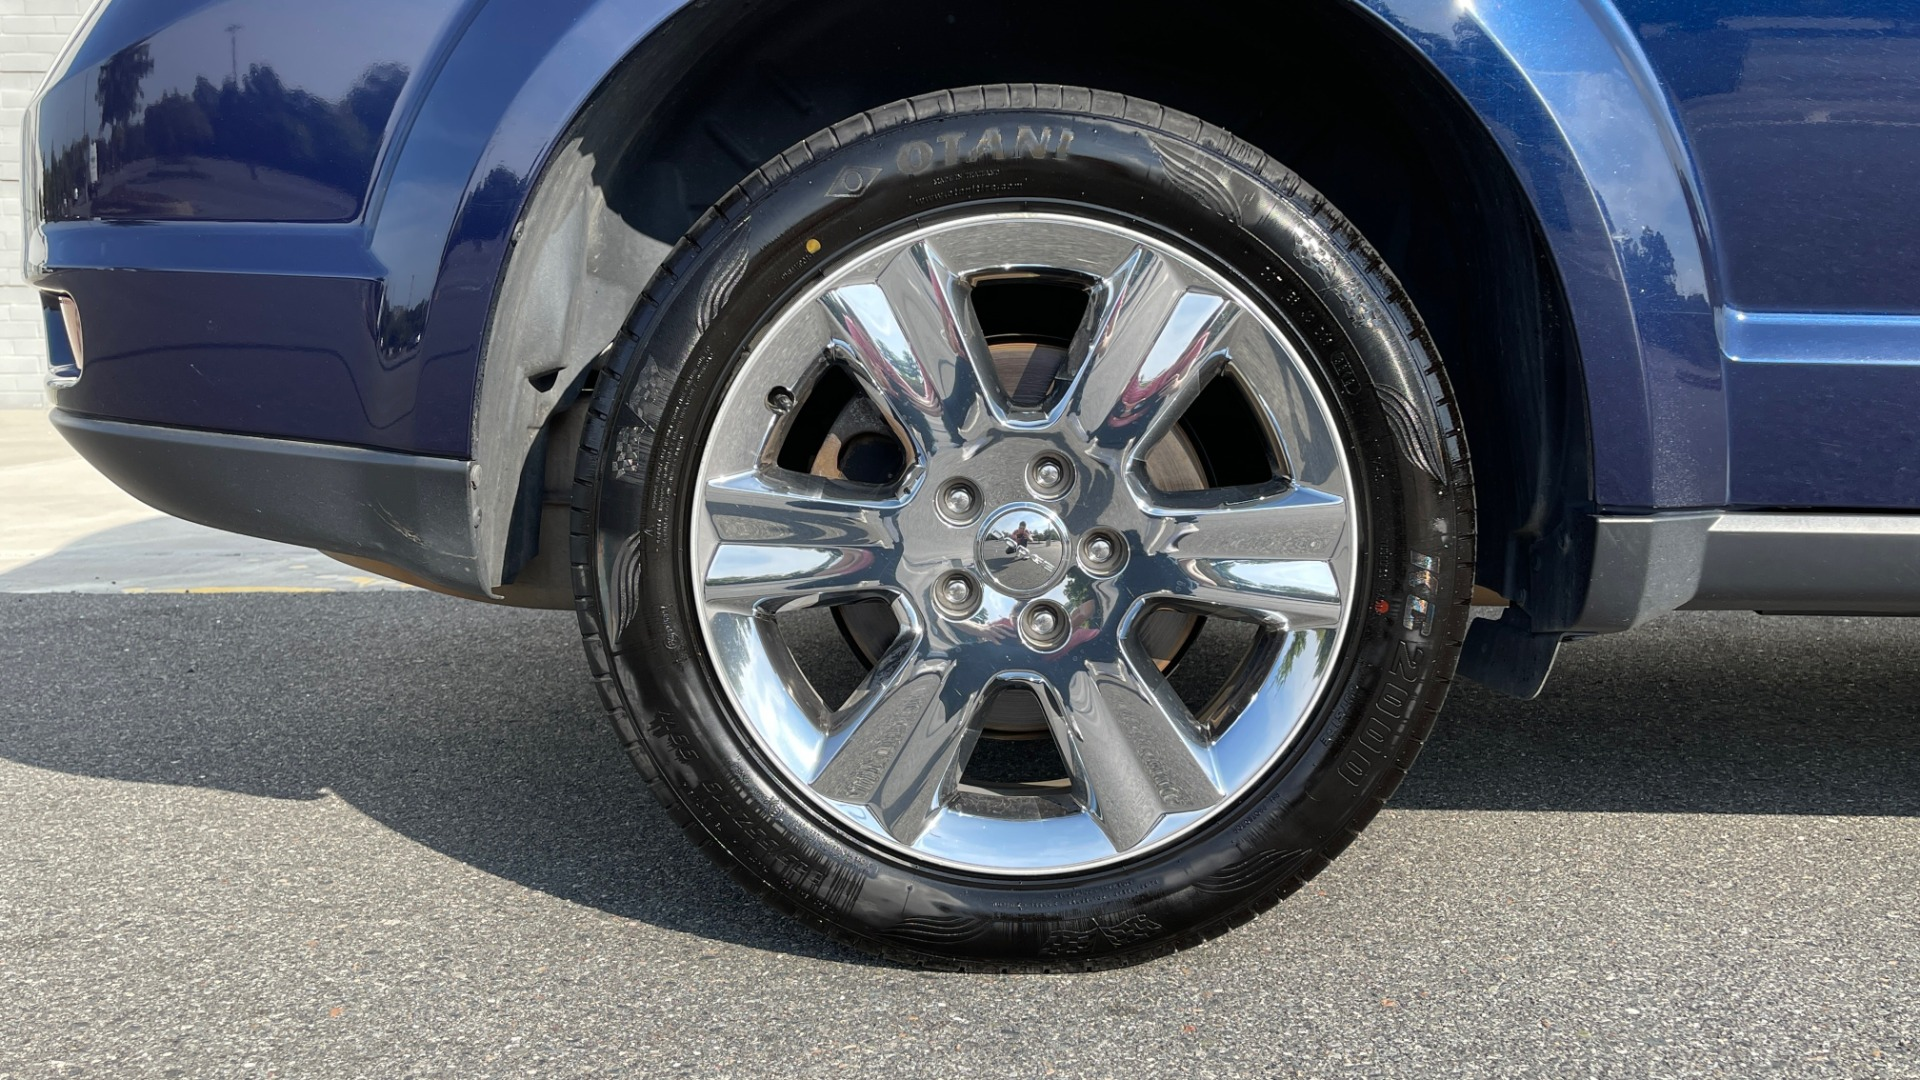 Used 2017 Dodge JOURNEY SXT PREMIUM / 2.4L / 4-SPD AUTO / KEYLESS-GO / 3-ROW / 19IN WHEELS for sale $15,995 at Formula Imports in Charlotte NC 28227 60